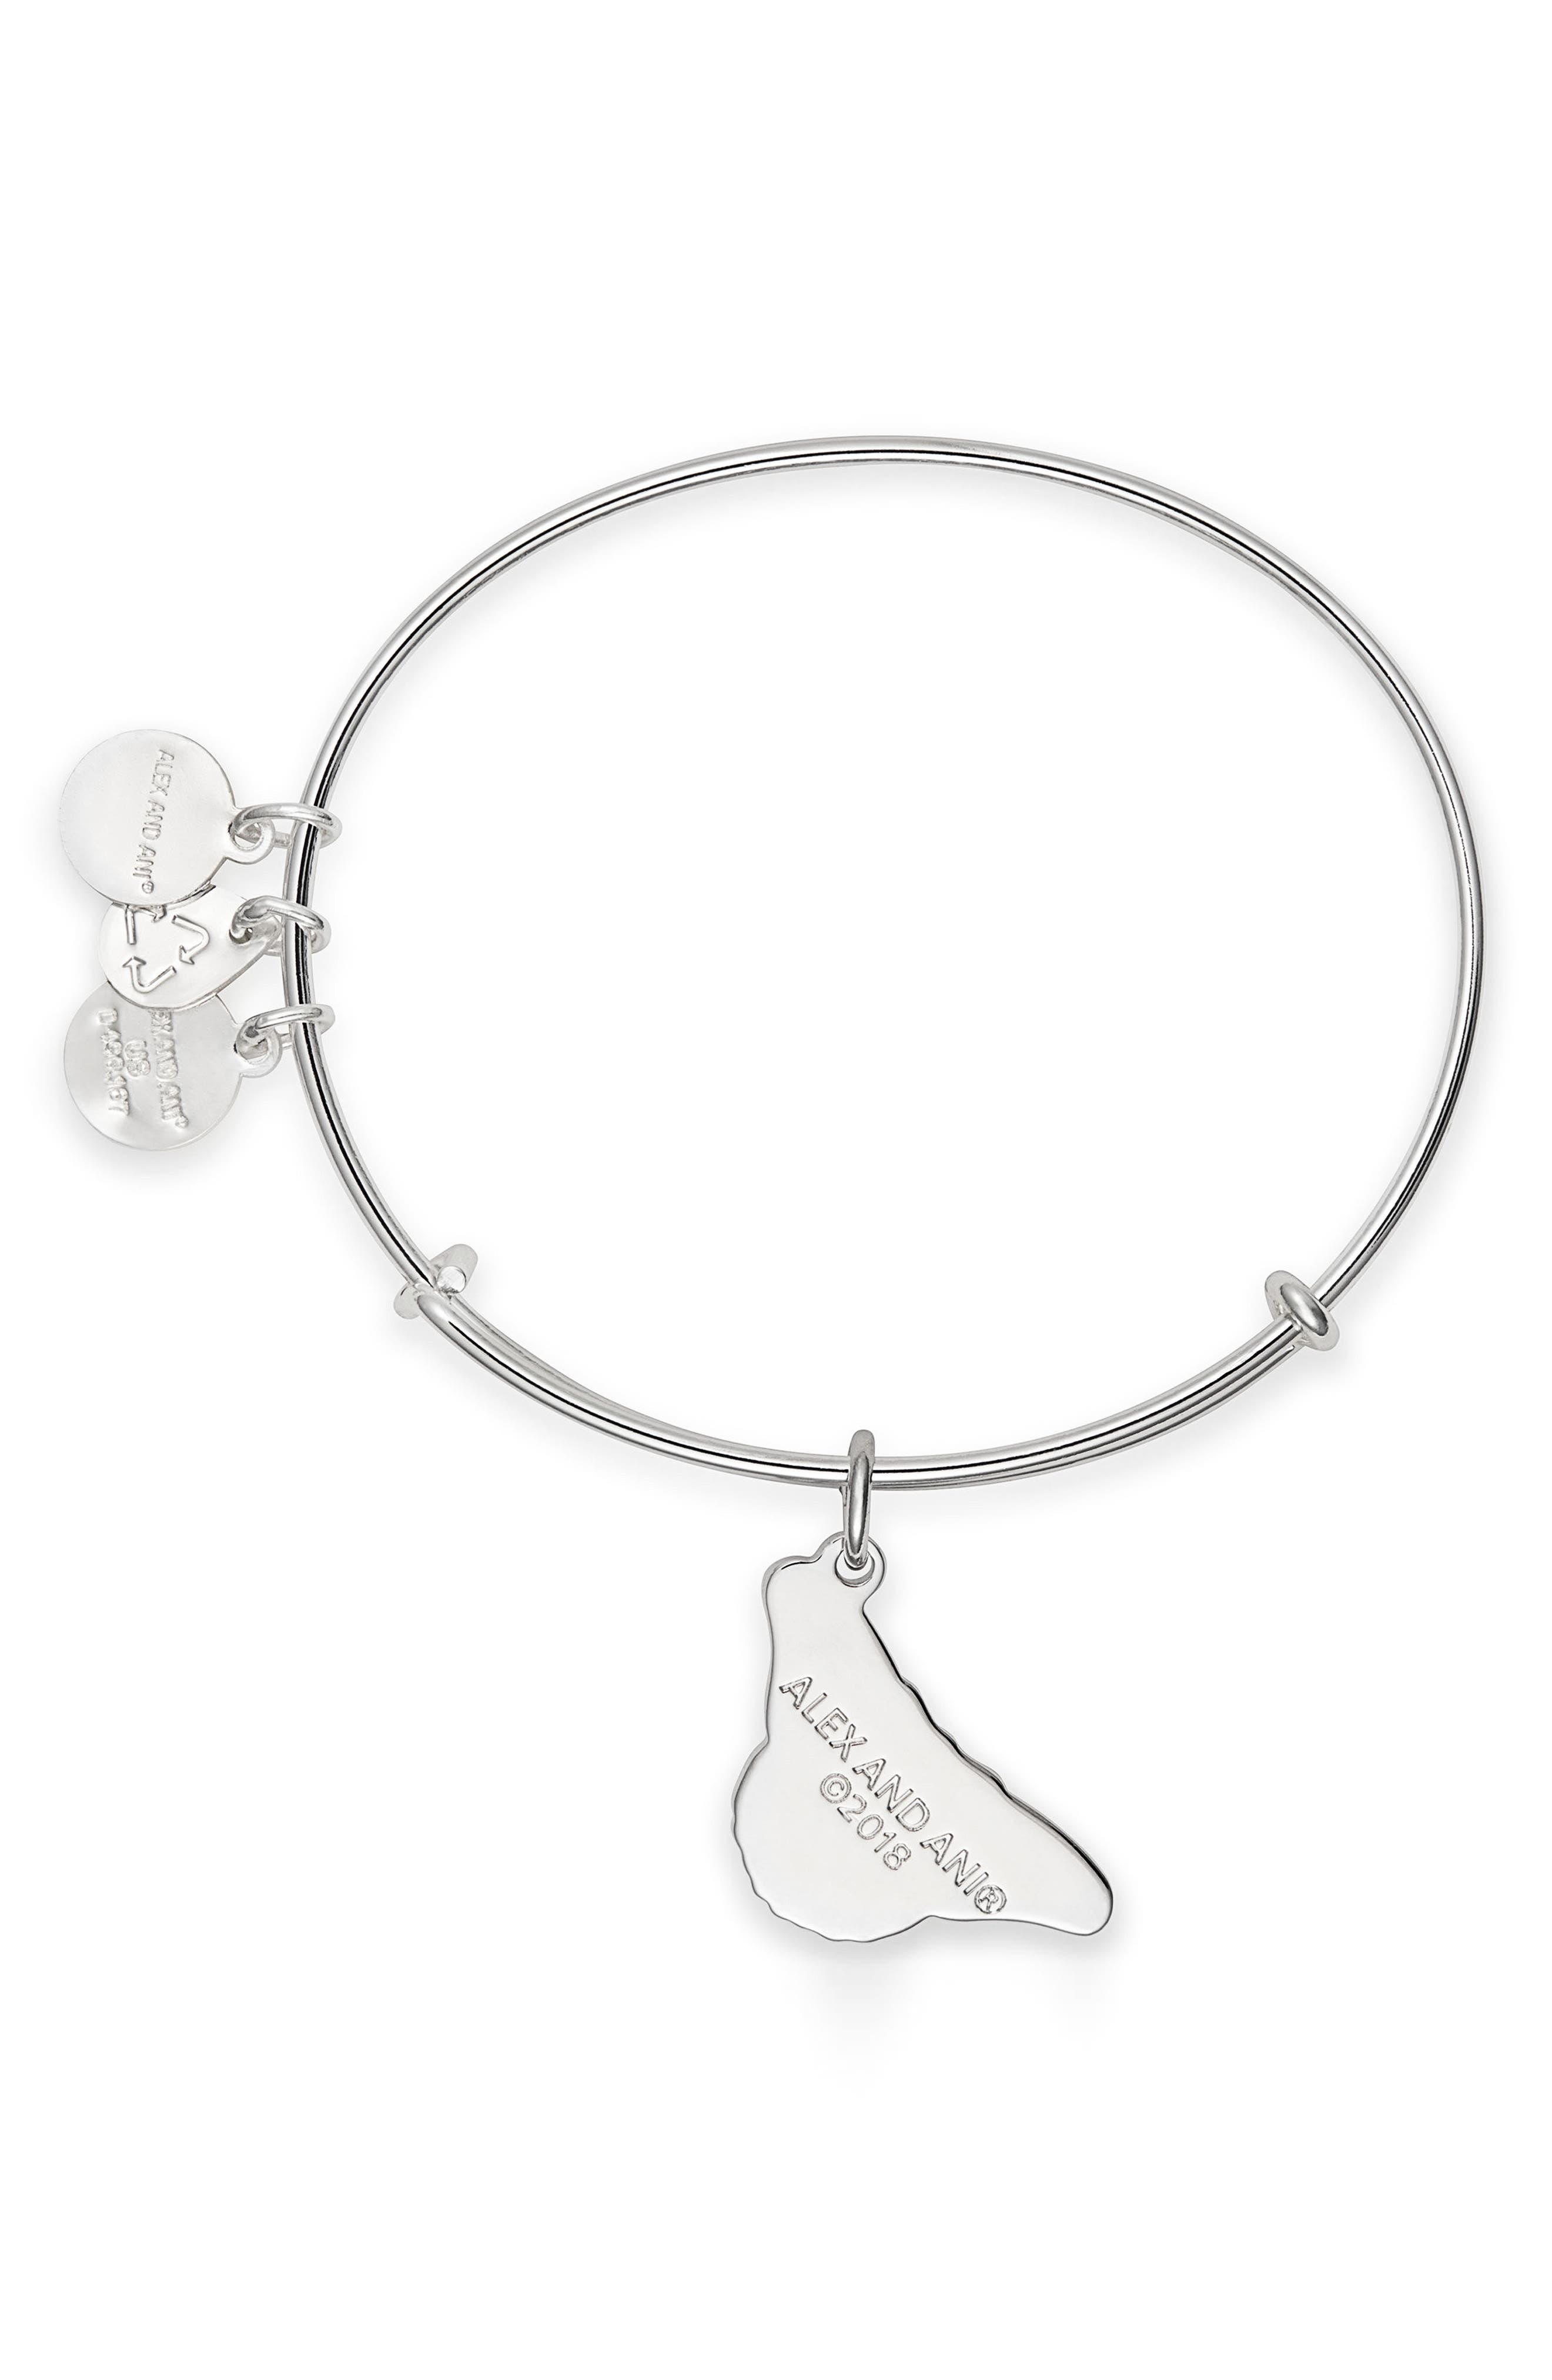 Charity by Design Monarch Butterfly Charm Bracelet,                             Alternate thumbnail 2, color,                             Silver